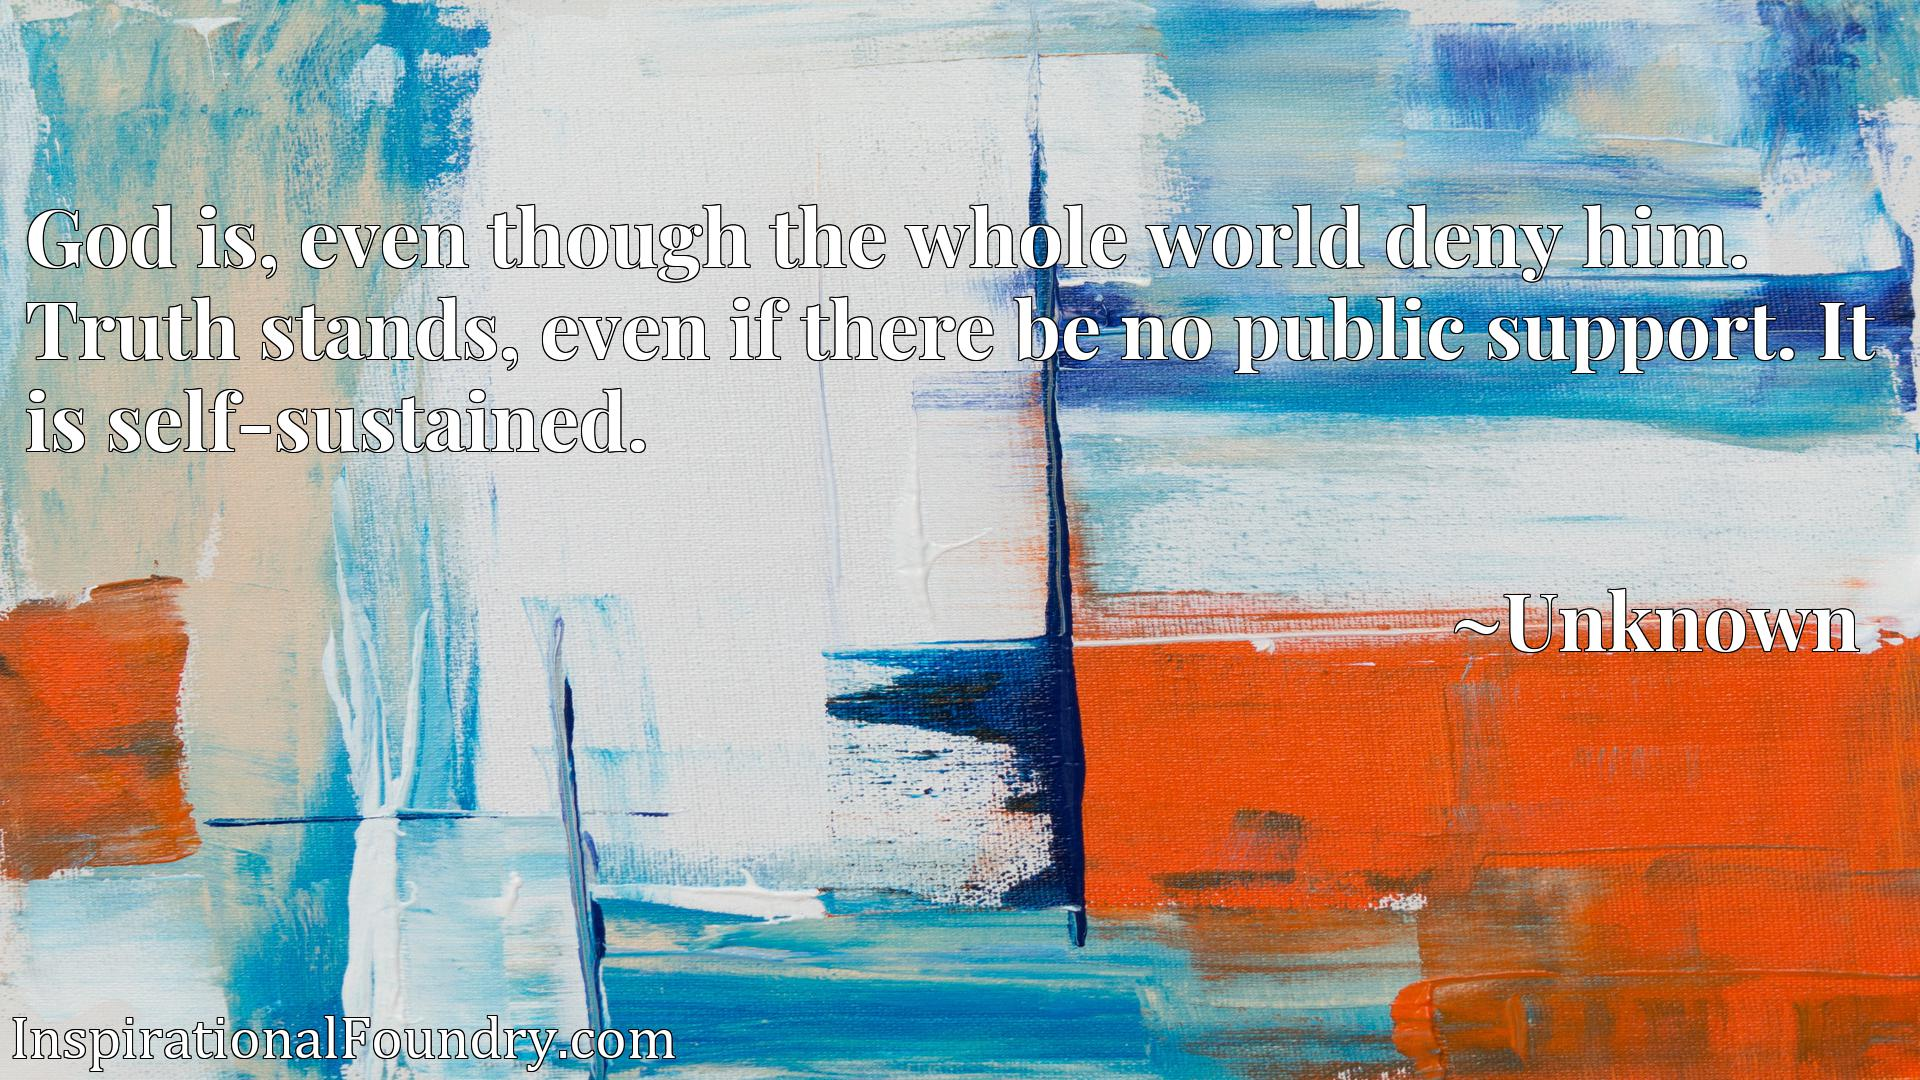 God is, even though the whole world deny him. Truth stands, even if there be no public support. It is self-sustained.